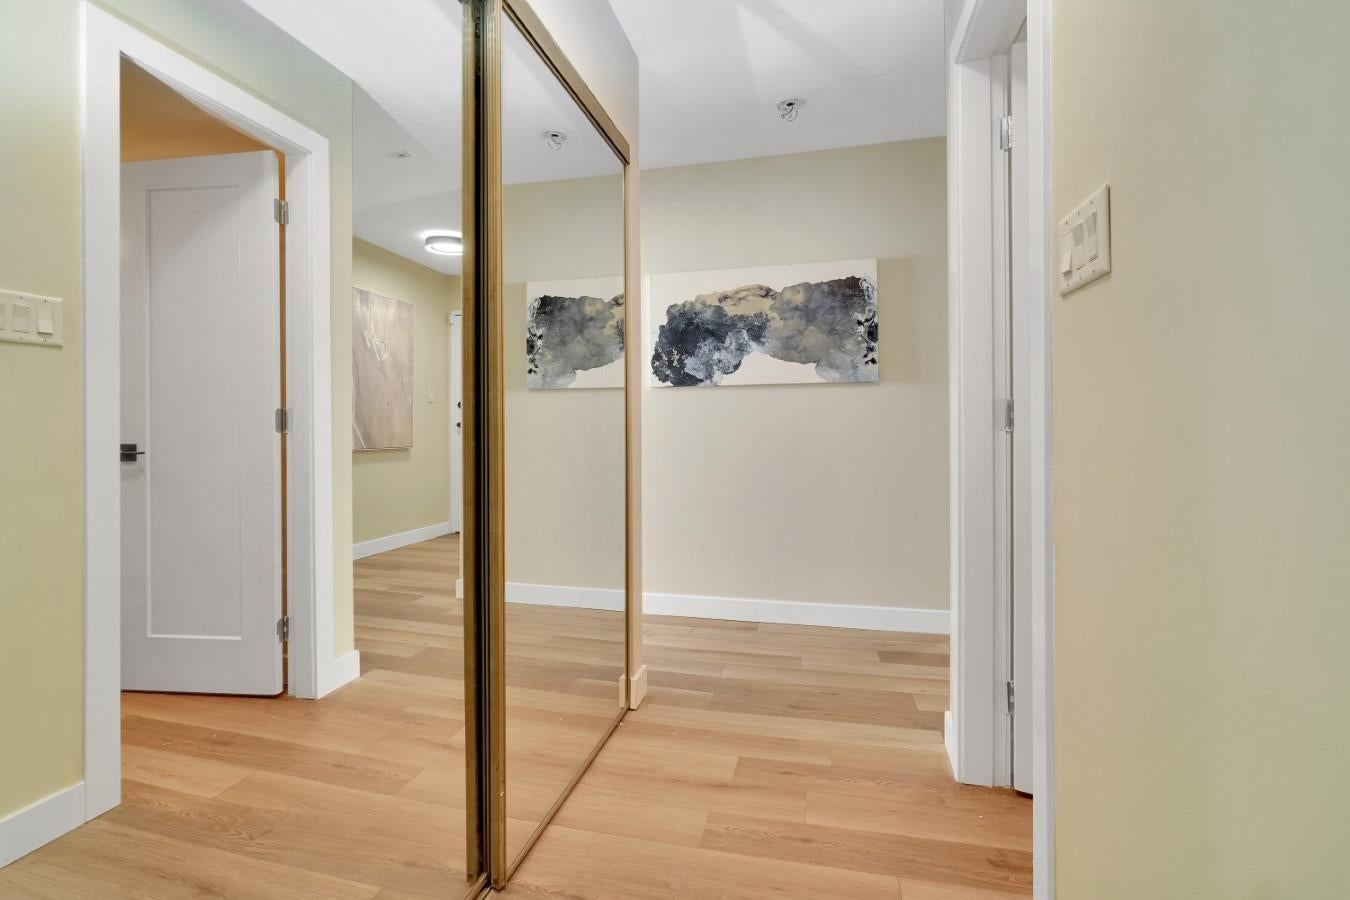 206 330 W 2ND STREET - Lower Lonsdale Apartment/Condo for sale, 2 Bedrooms (R2604160) - #27